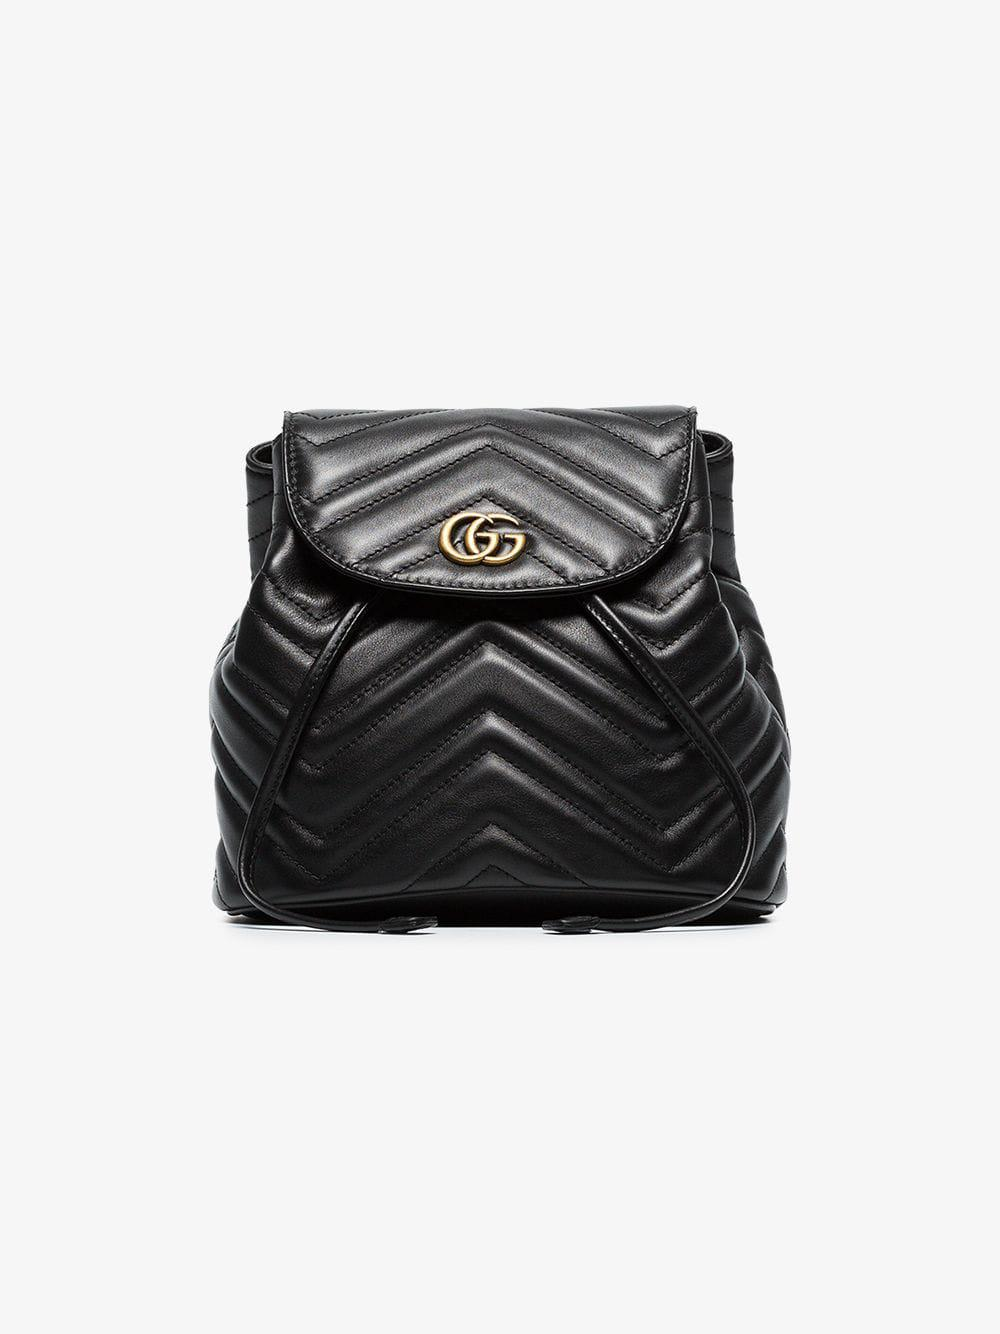 8030ef2e7326 Gucci - Black GG Marmont Matelassé Backpack - Lyst. View fullscreen